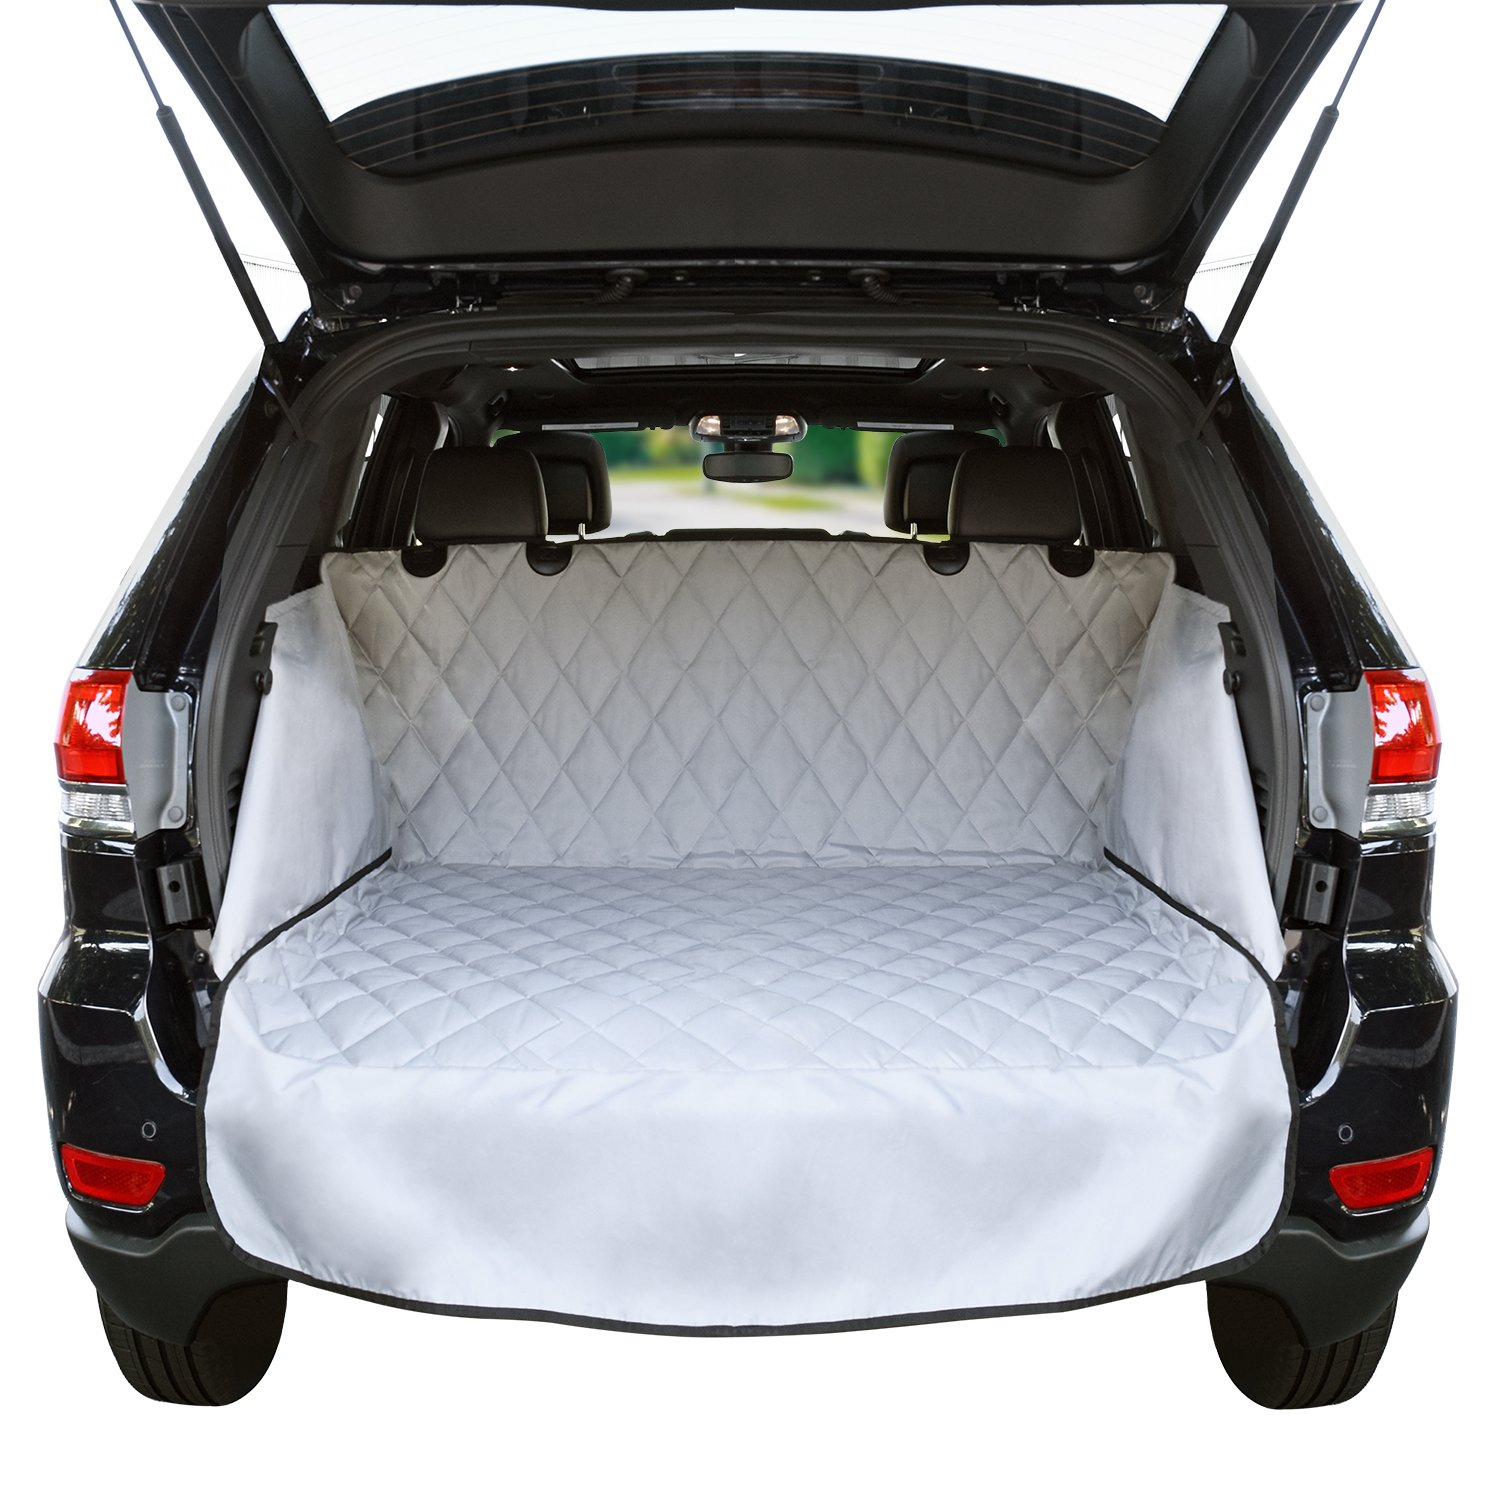 Cargo Liner For SUV's and Cars, Waterproof Material, non Slip Backing, With Side Walls Protectors, Extra Bumper Flap Protector, Large Size - Universal Fit by Jumbl Pet (Image #1)